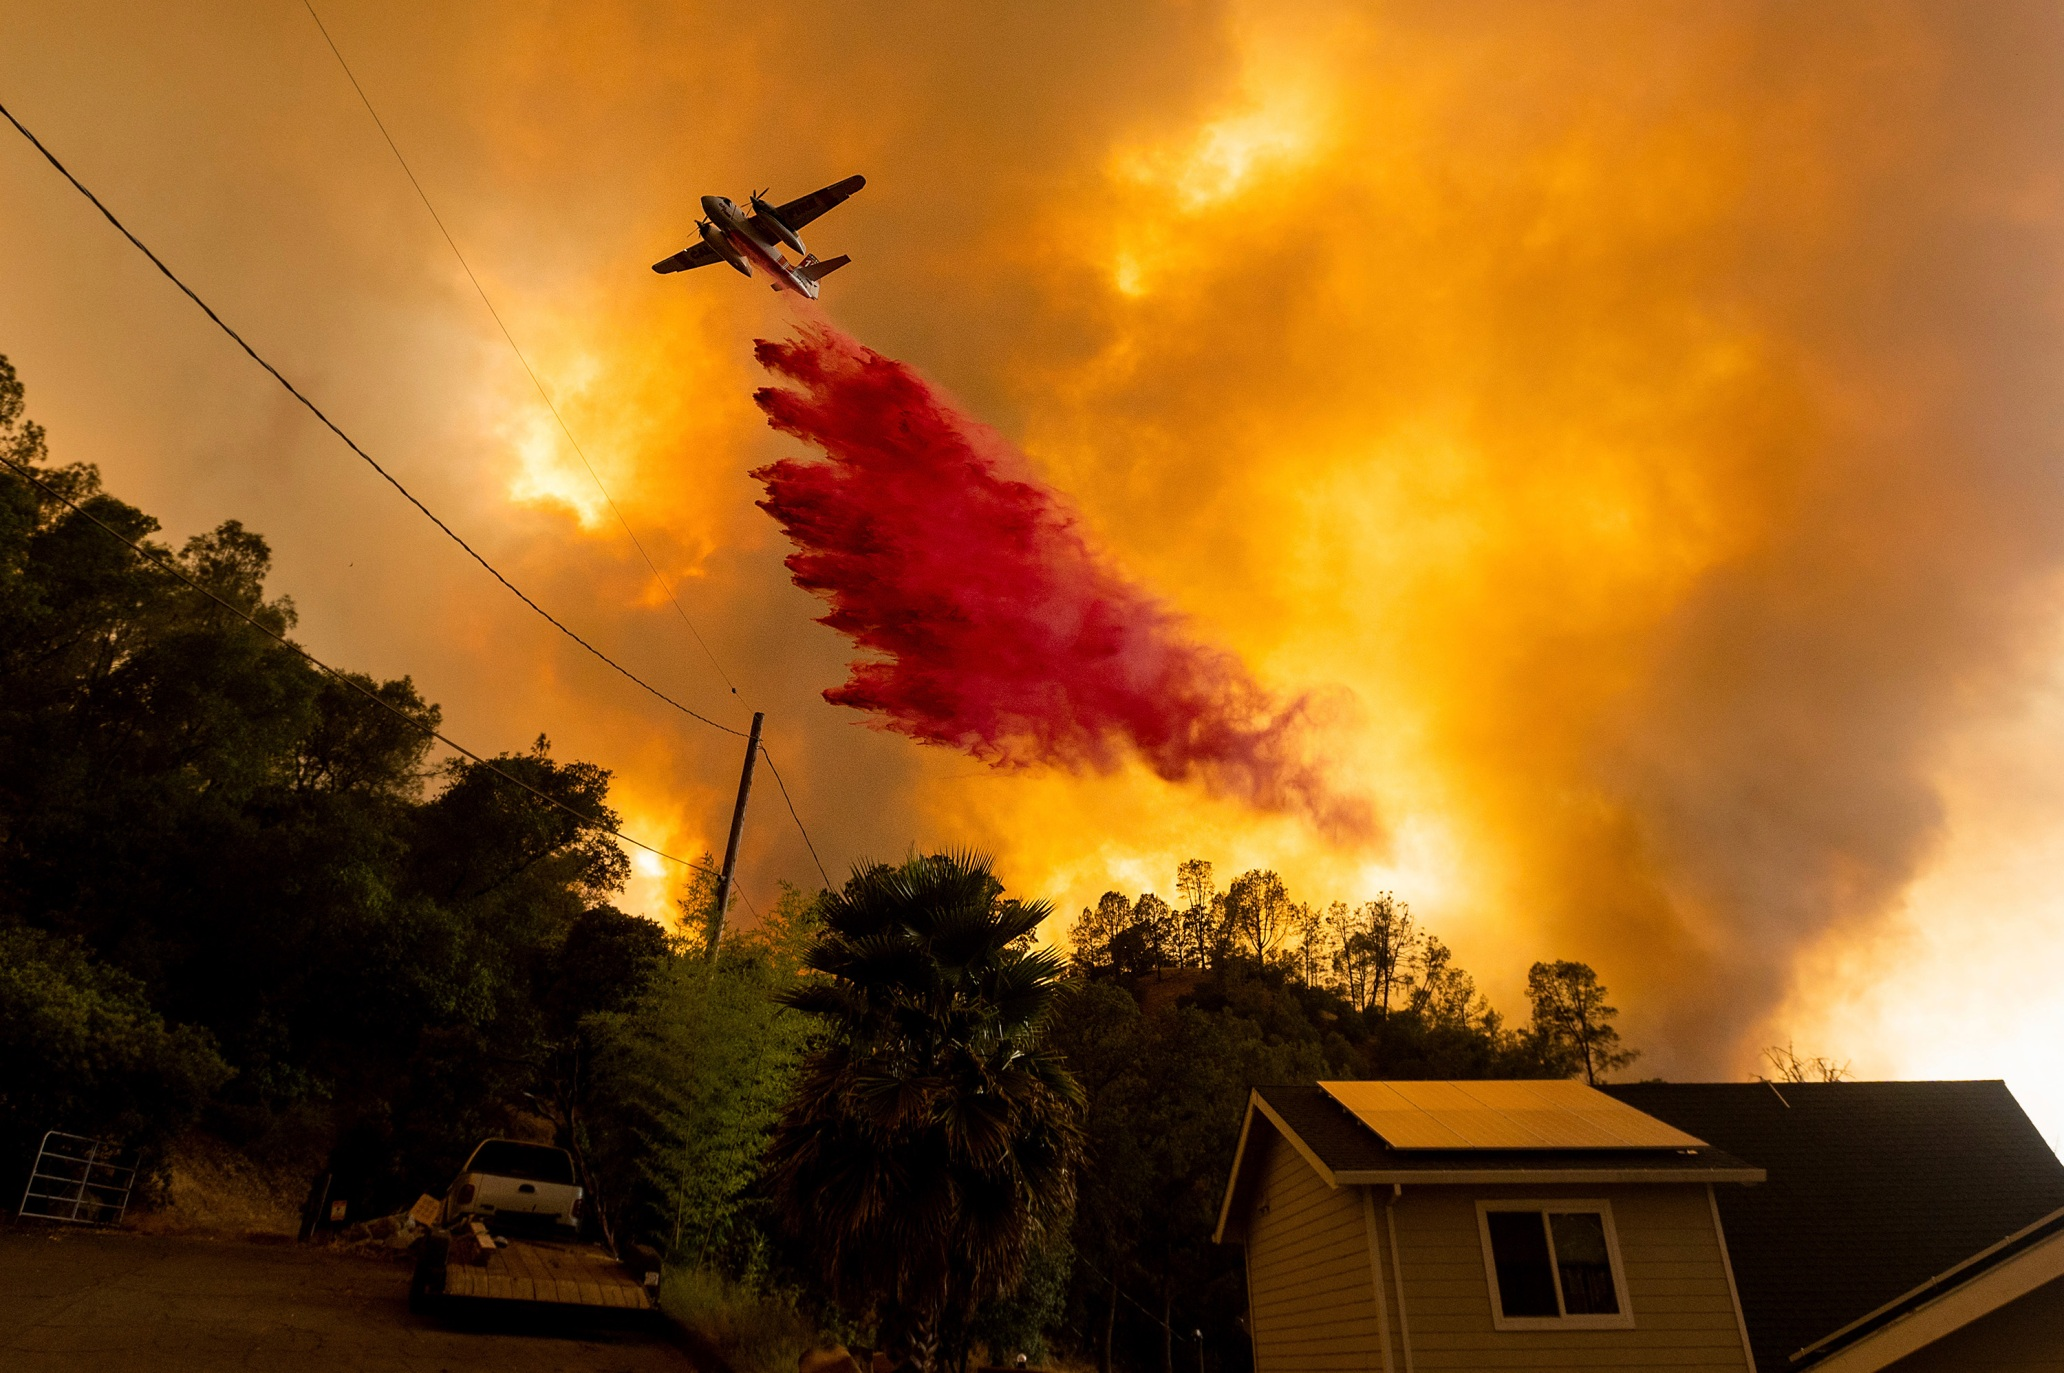 Yes, climate change is almost certainly fueling California's massive fires